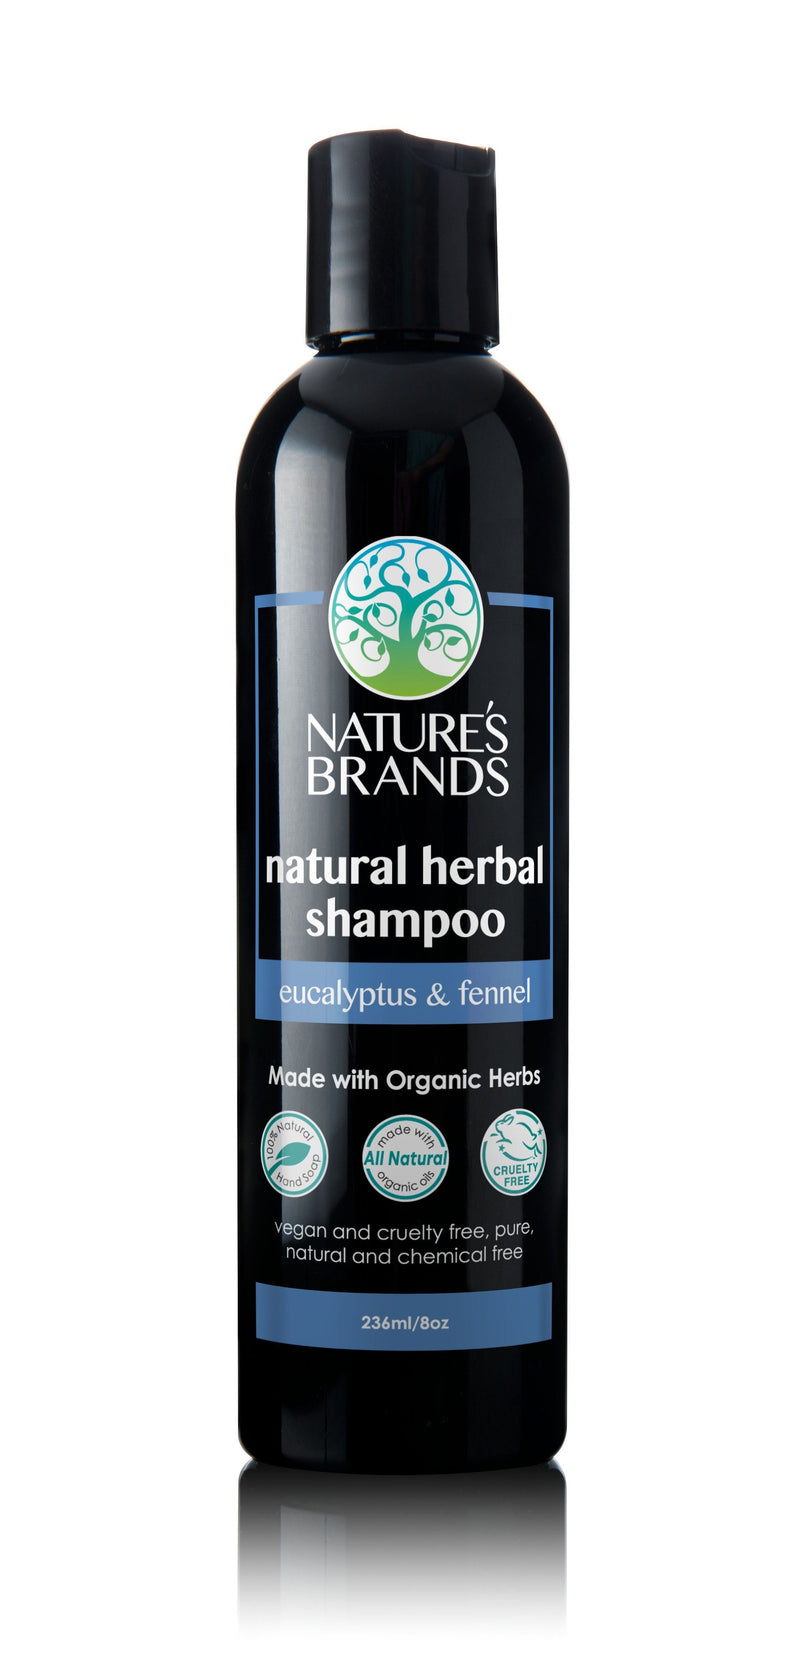 Herbal Choice Mari Natural Shampoo, Eucalyptus & Fennel; Made with Organic - Herbal Choice Mari Natural Shampoo, Eucalyptus & Fennel; Made with Organic - 8floz